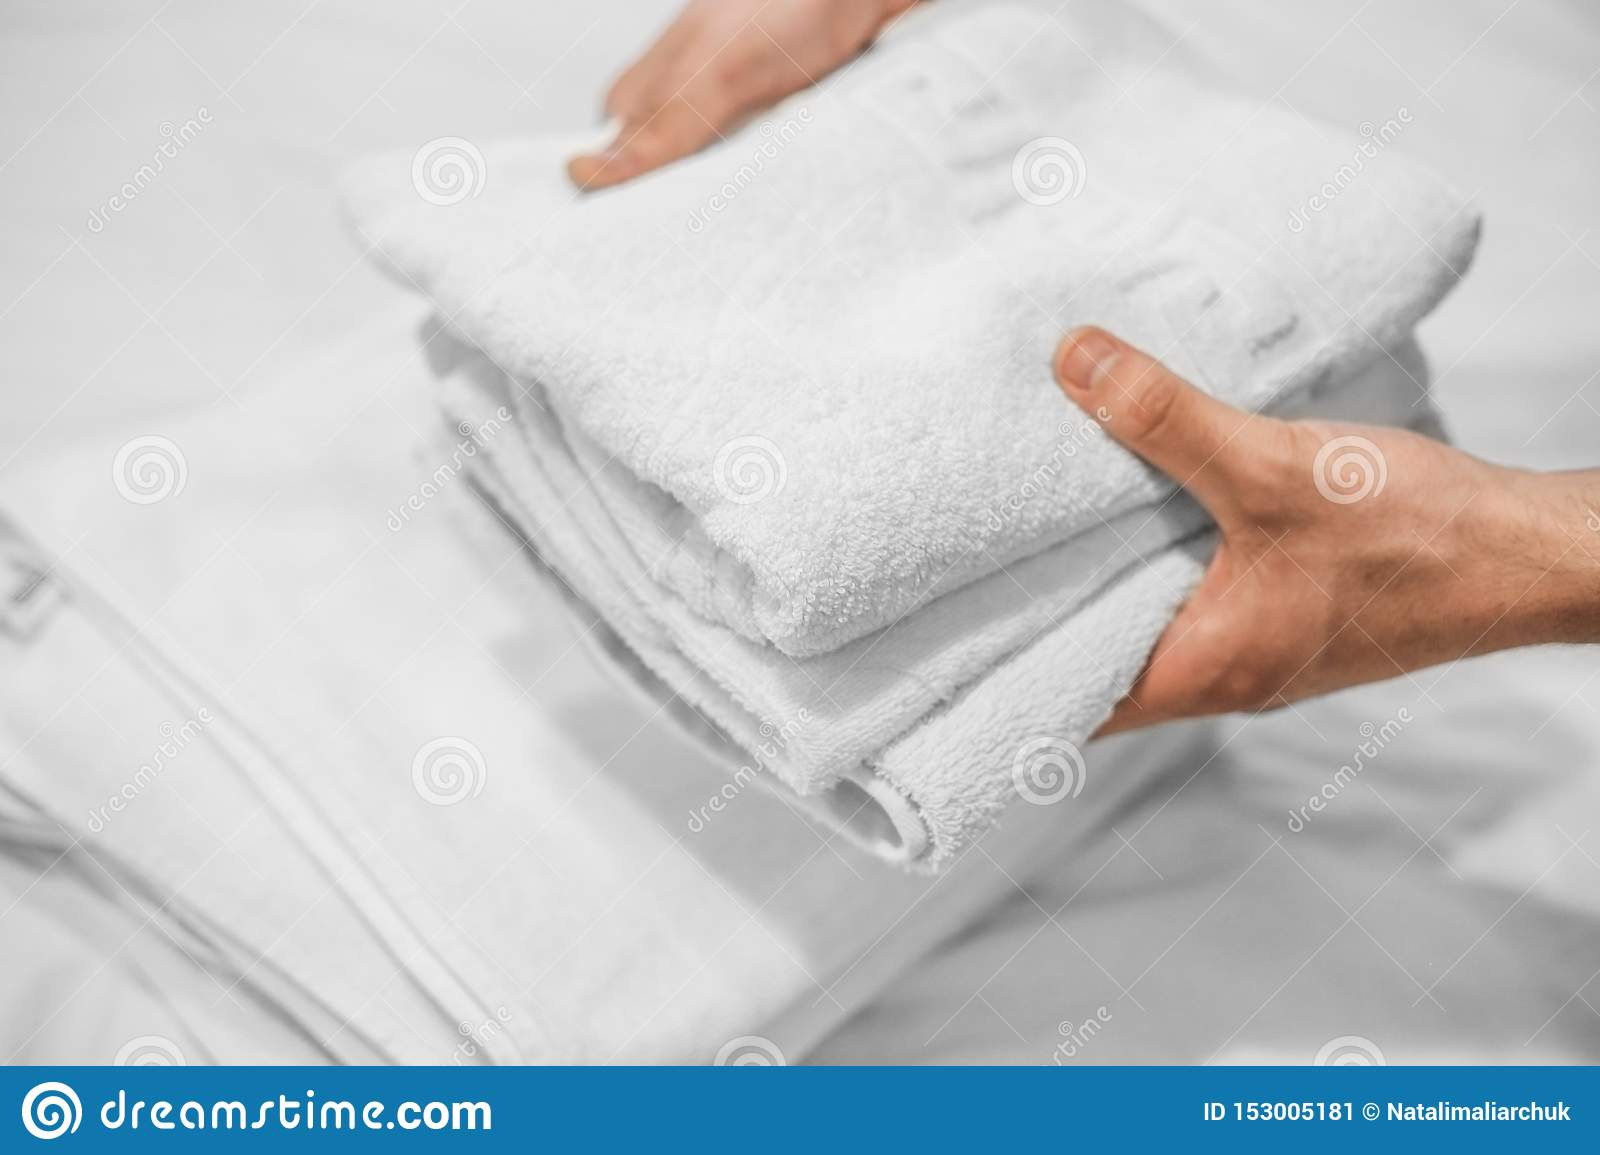 Hands put white towels on a white bed. Hotel business